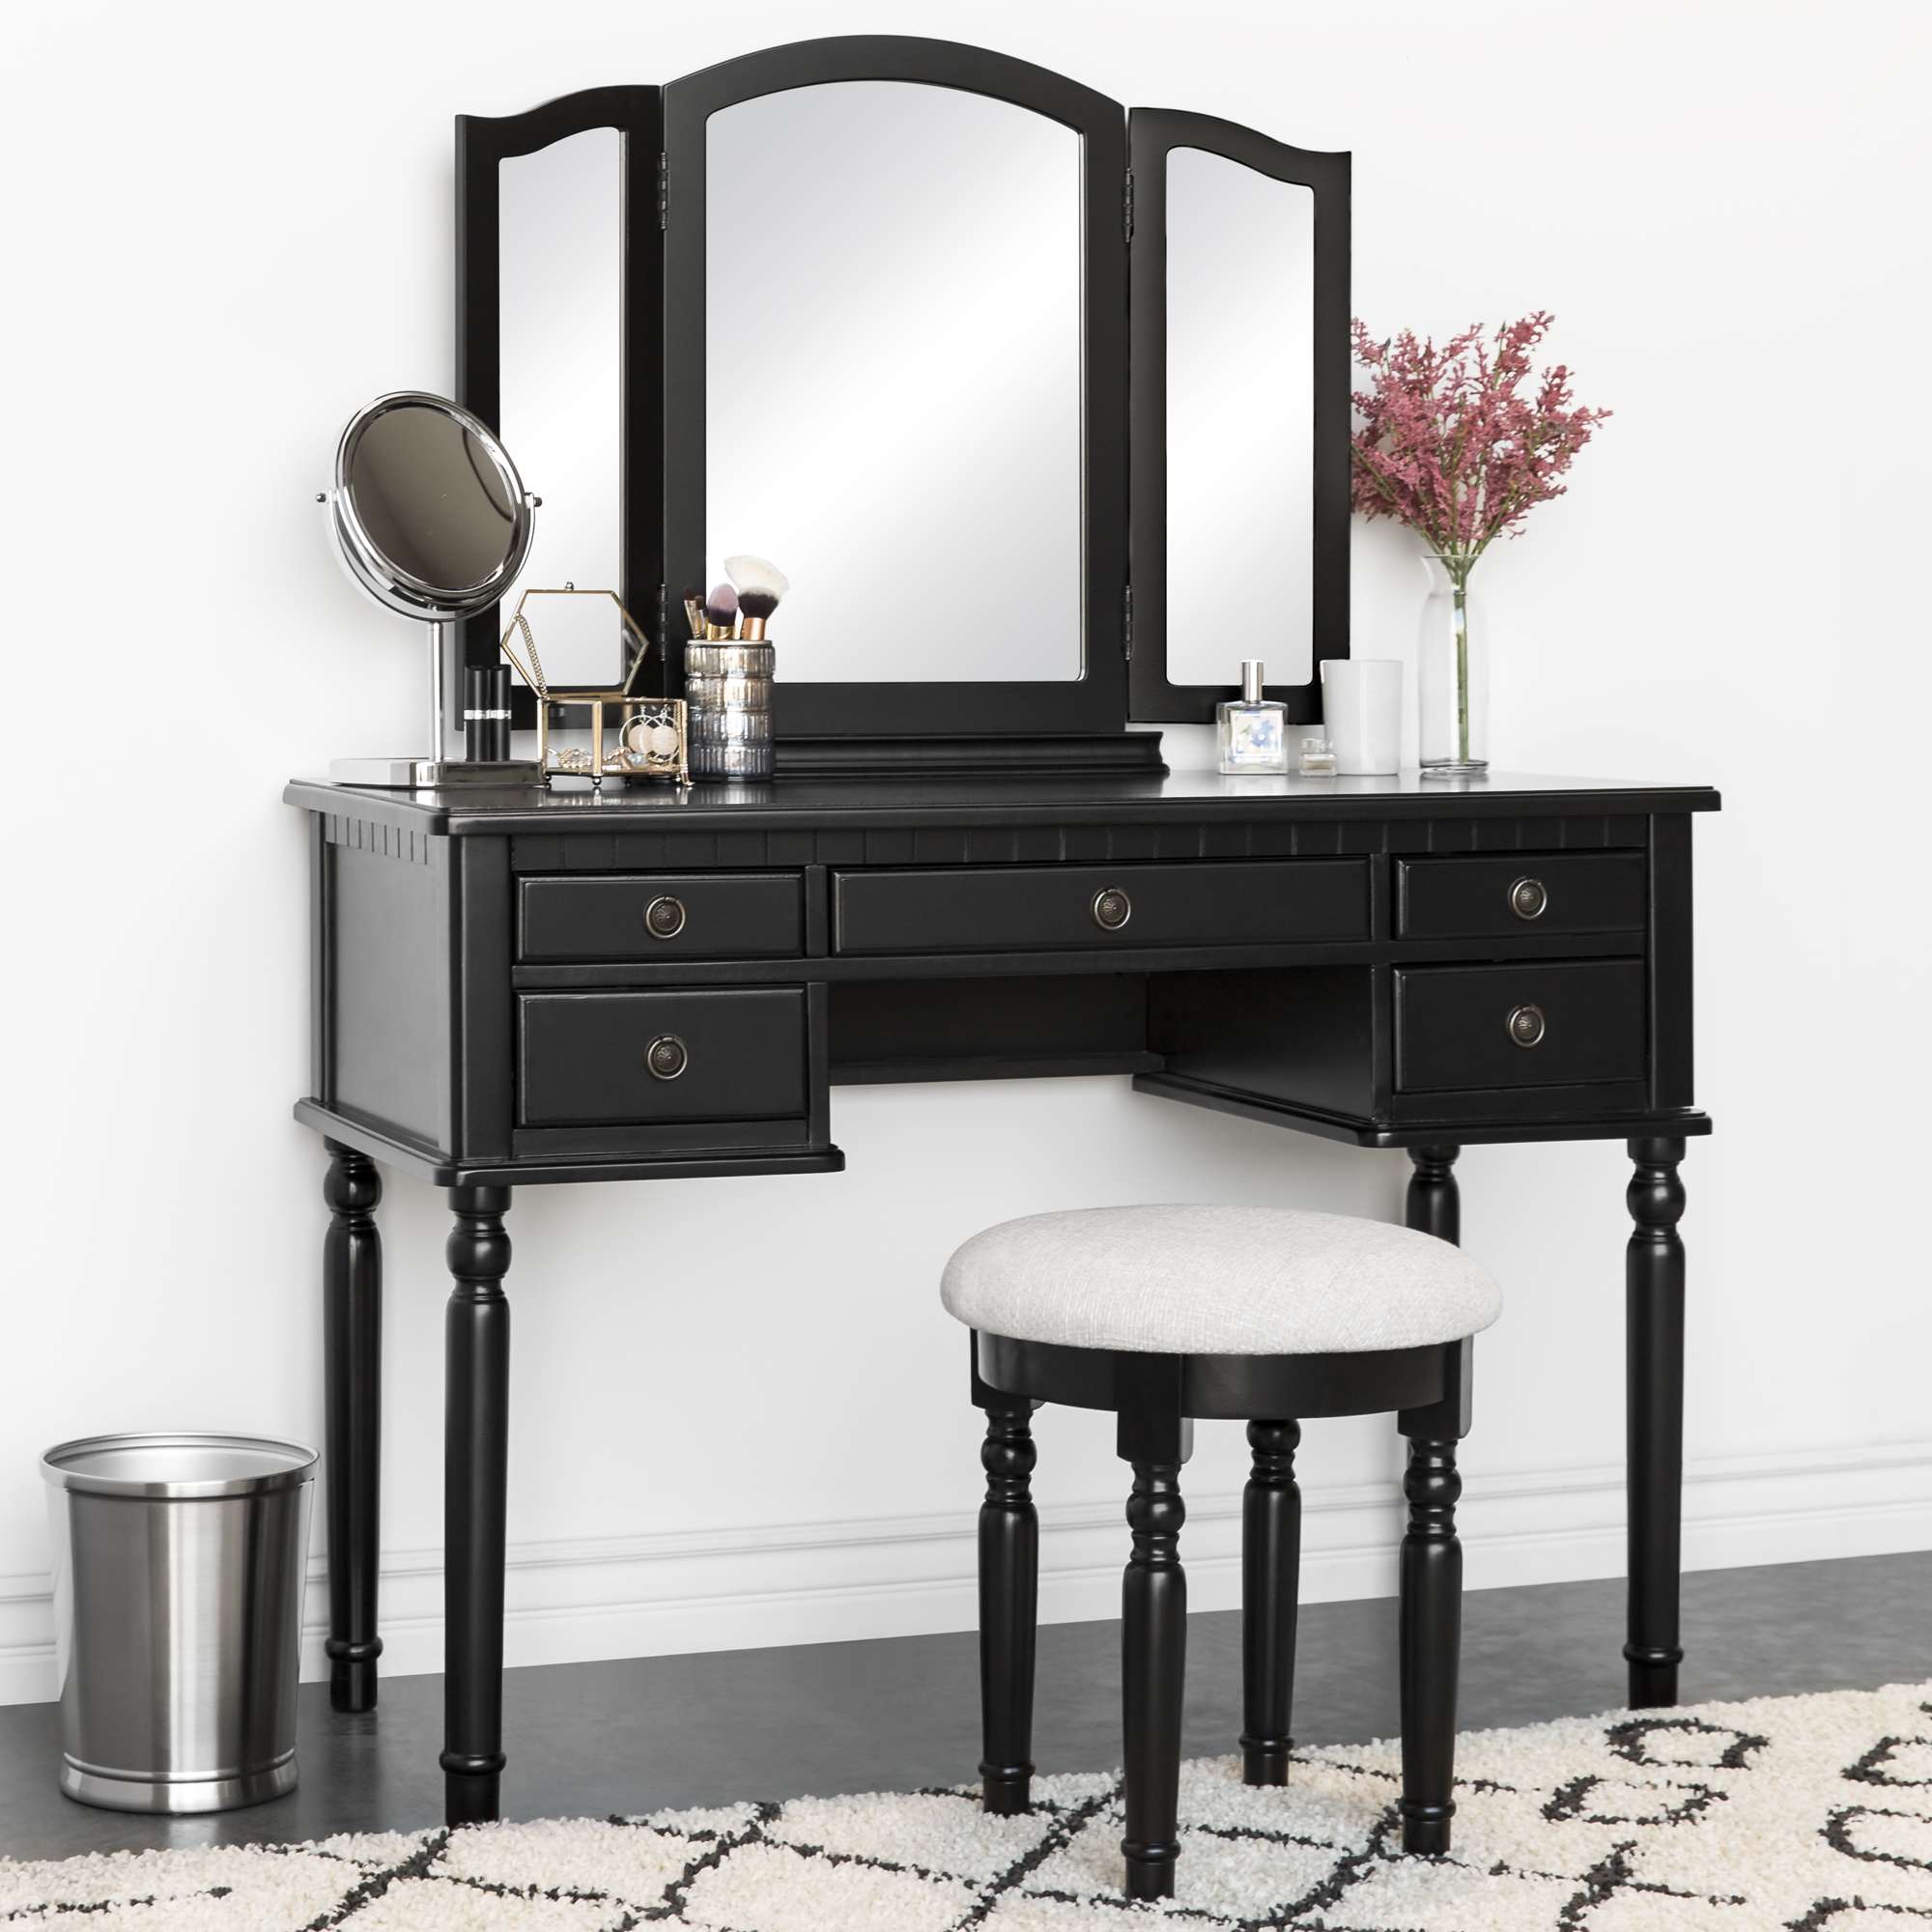 Best Choice Products Bedroom Makeup Cosmetic Beauty Vanity Hair Dressing Table Set w/ Tri-Folding Mirror, Upholstered Stool Seat, 5 Drawer Storage Organizers - Black